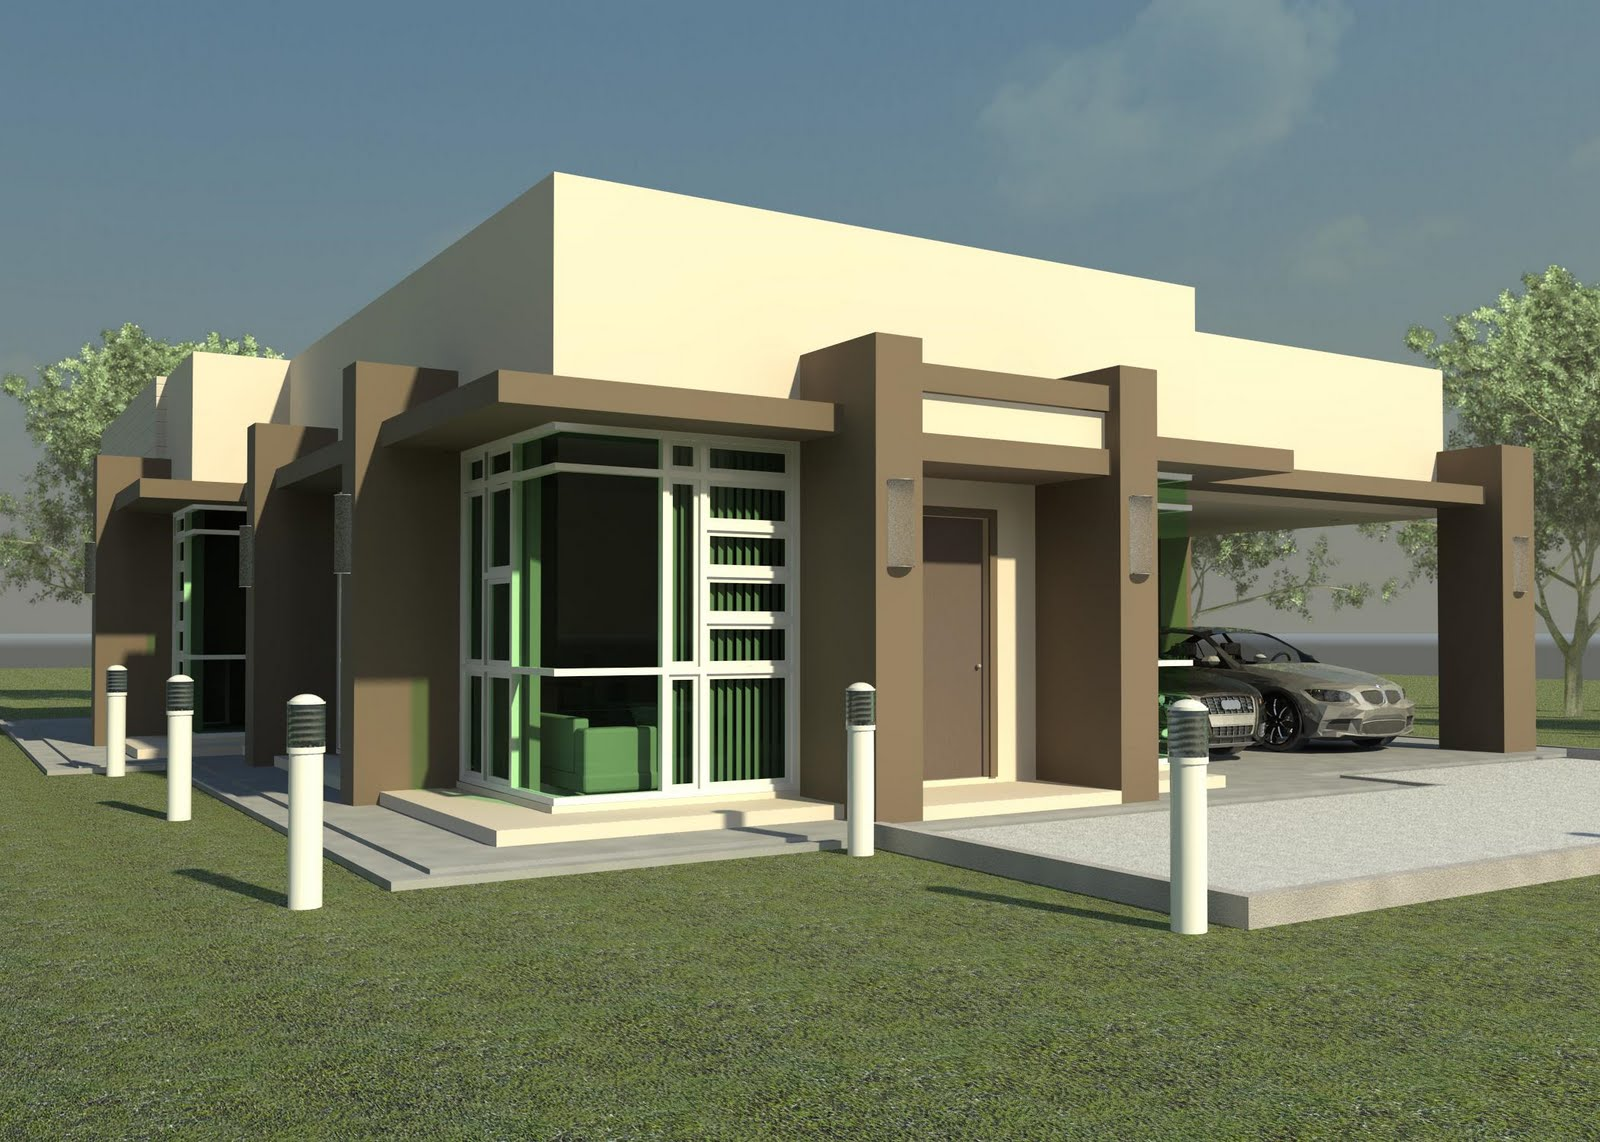 New home designs latest modern small homes designs exterior for Modern exterior house designs